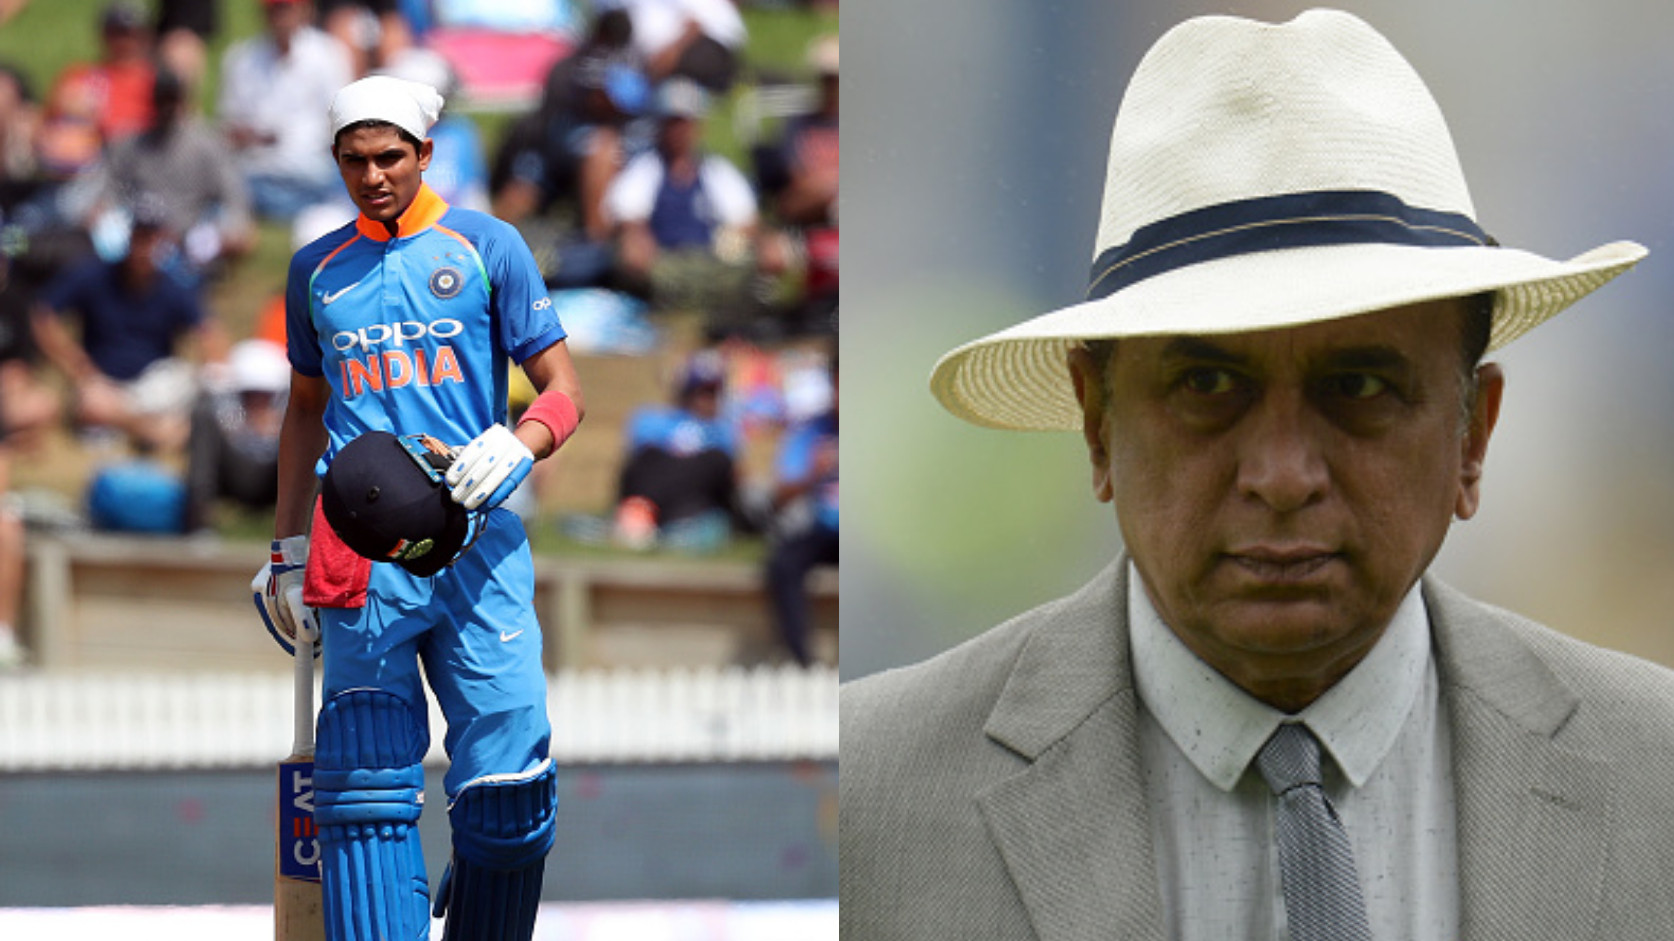 NZ v IND 2019: Sunil Gavaskar feels Shubman Gill is future of India despite India's poor show in Hamilton